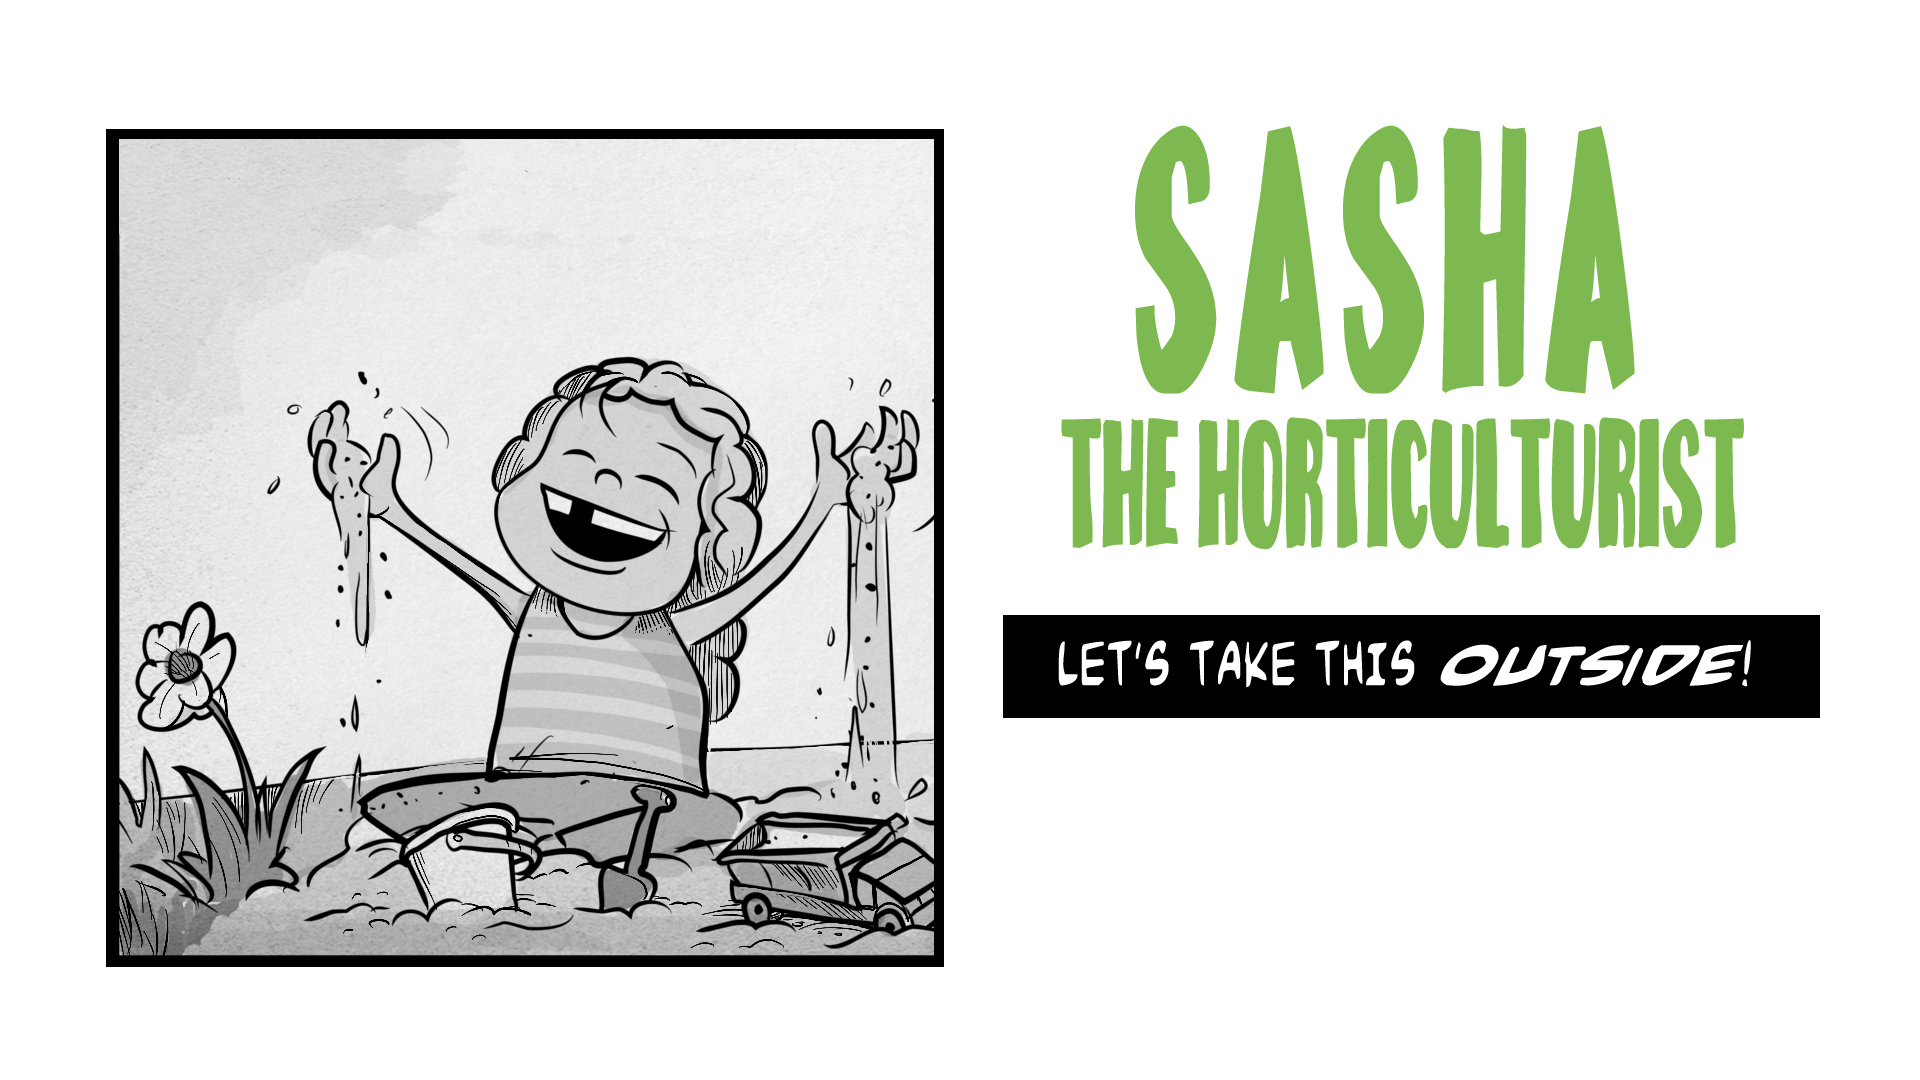 Story title:  Sasha, the Horticulturist.  Let's take this outside!